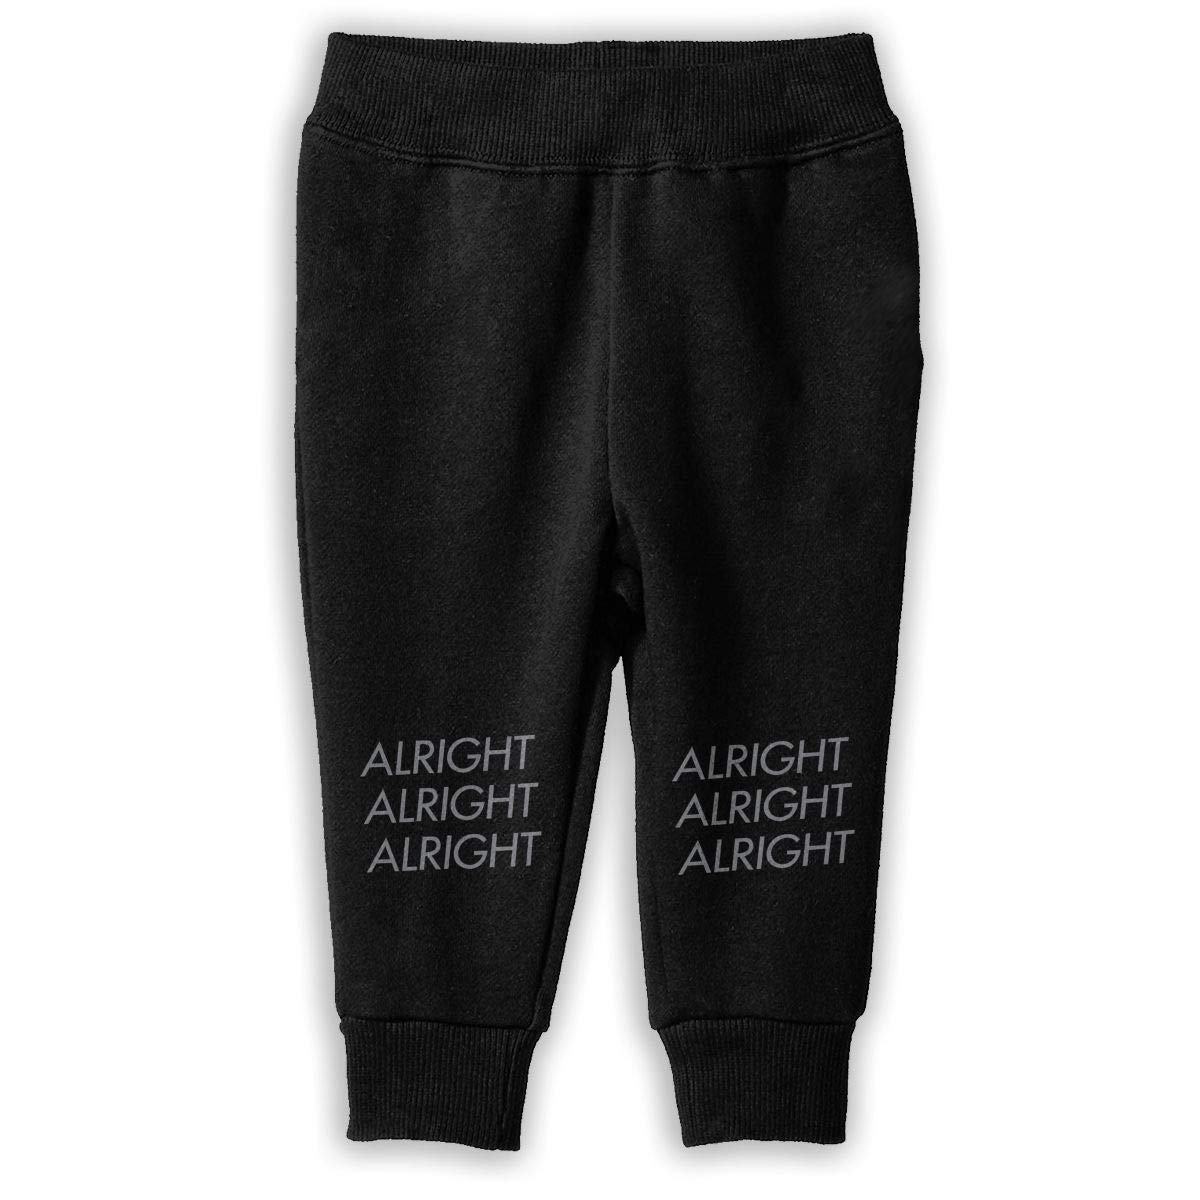 Printed Alright Alright Alright Childrens Boys Girls Unisex Cool Sweatpants